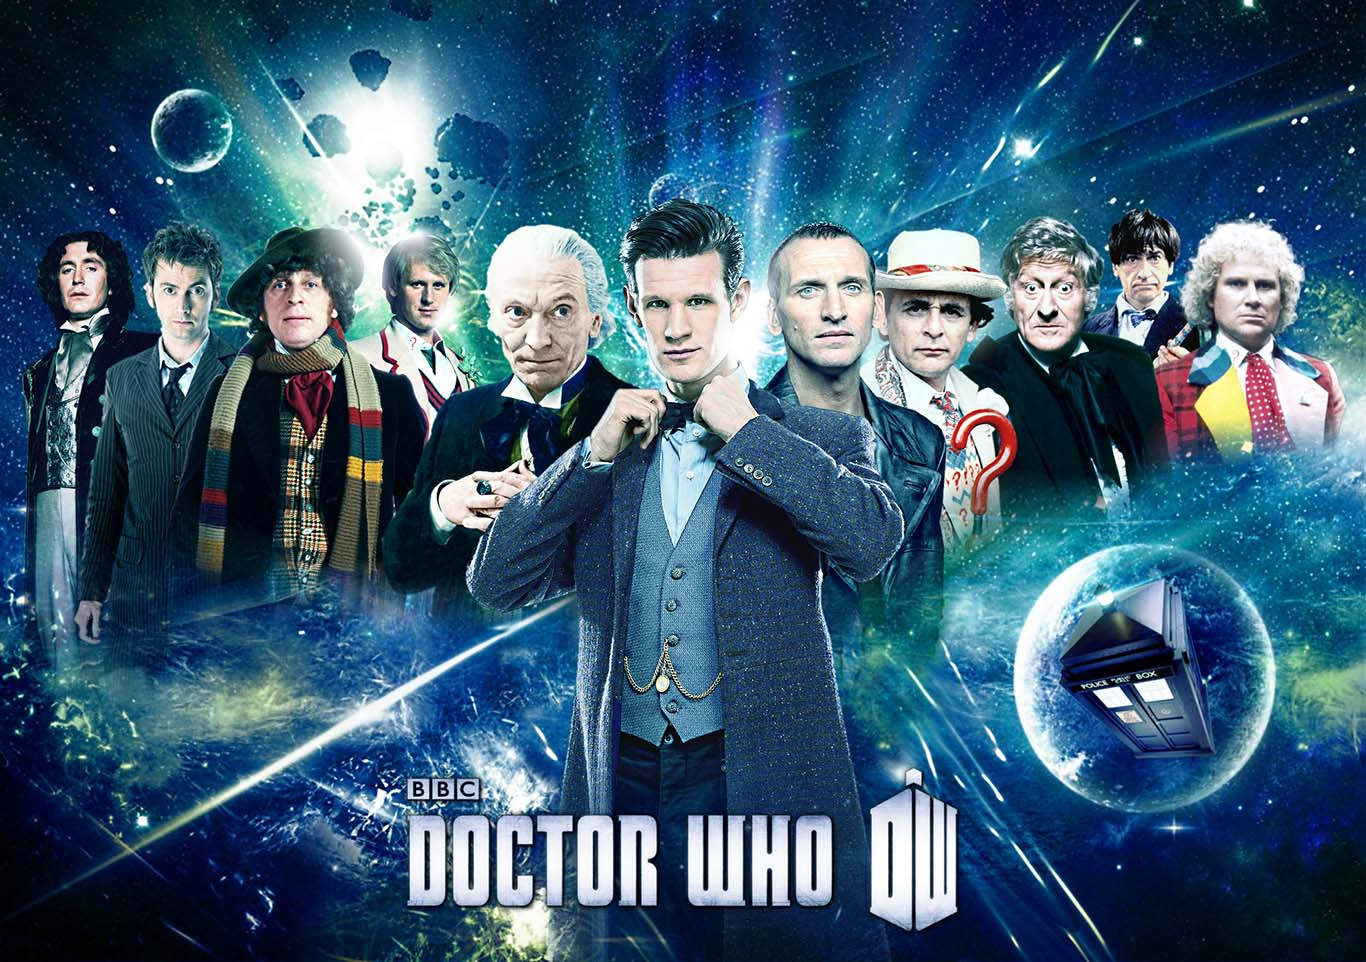 Doctor Who Wallpaper All Doctors | Doctor Who Wallpaper  All 12 Doctors Wallpaper